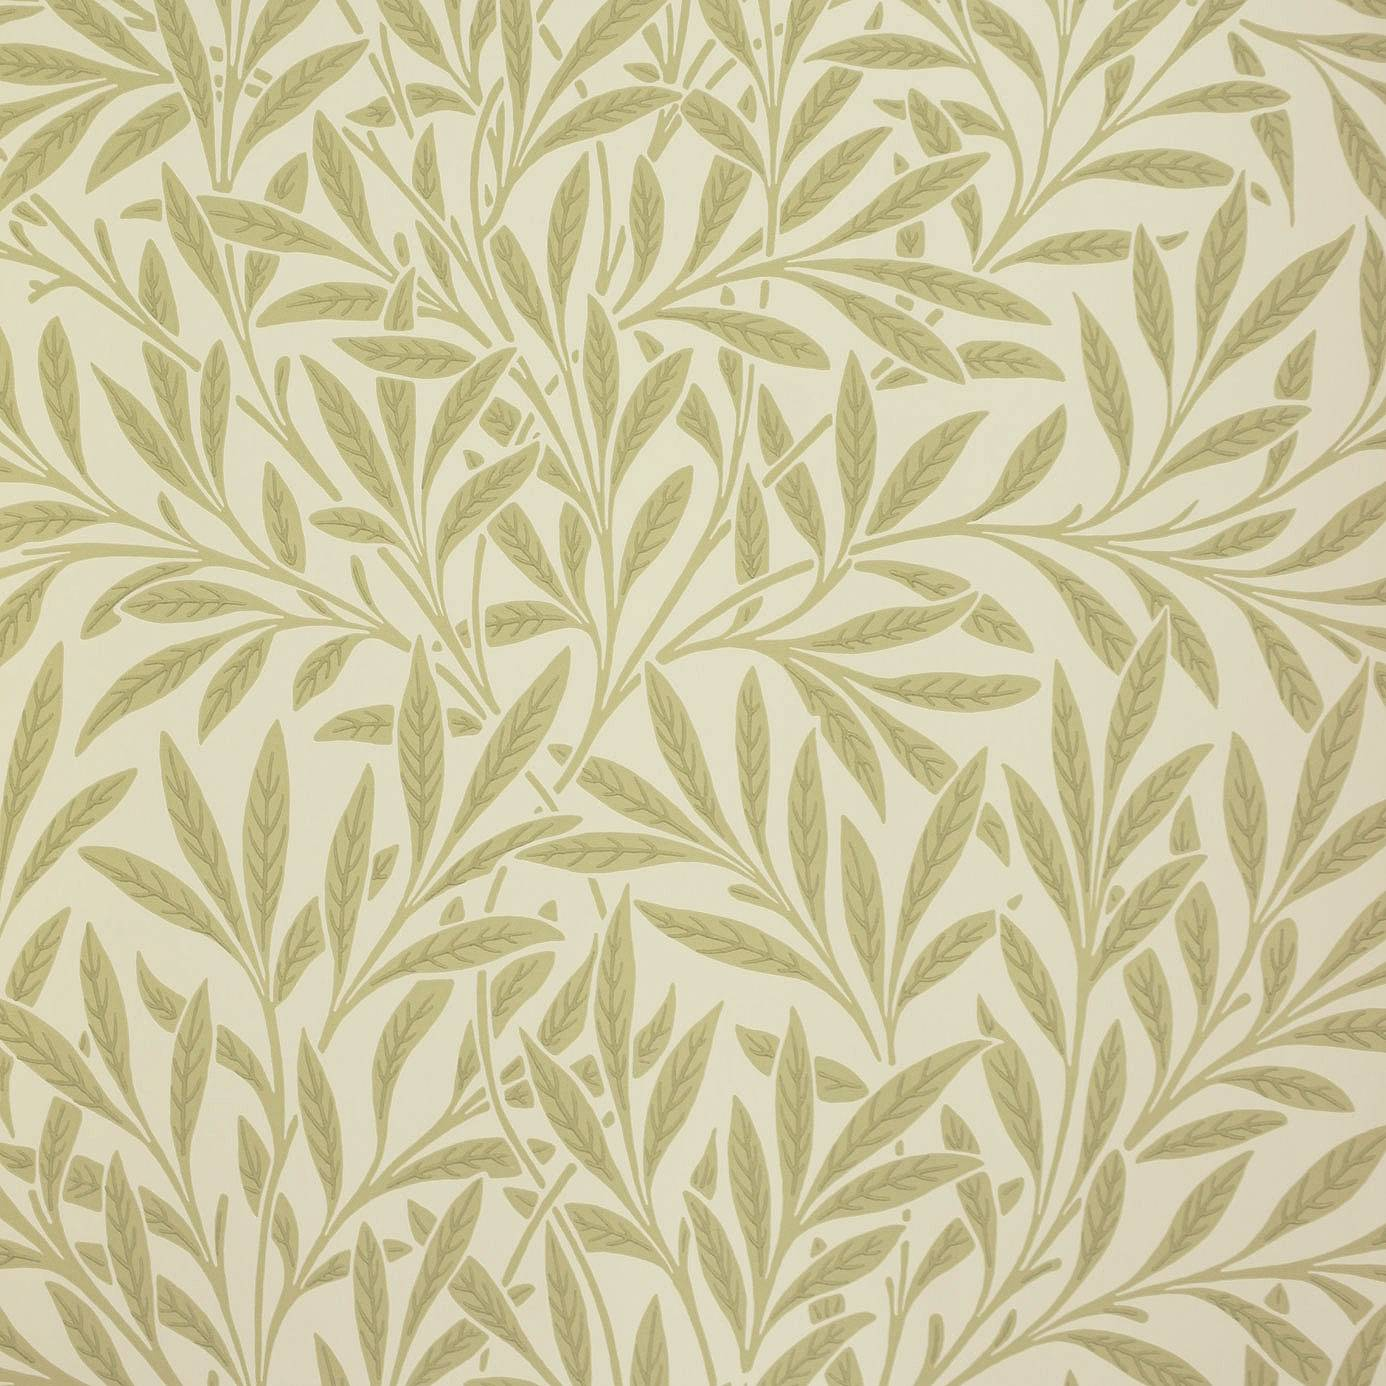 Willow Wallpaper   Olive 210383   William Morris Co 1386x1386